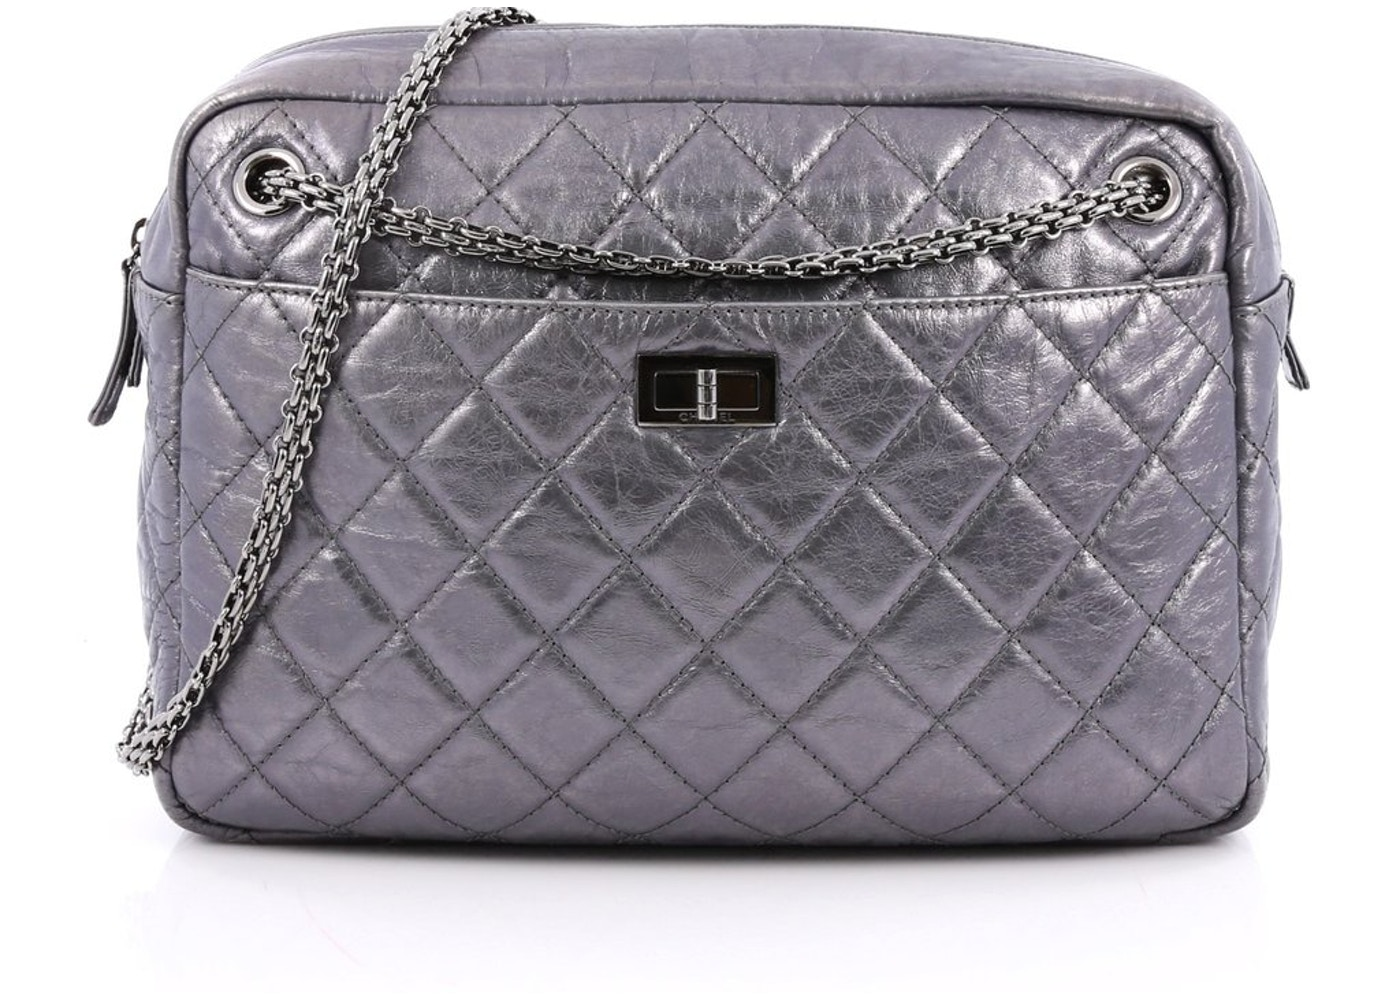 f10836496731e8 Chanel Reissue Camera Bag Quilted Metallic Large Silver. Quilted Metallic  Large Silver